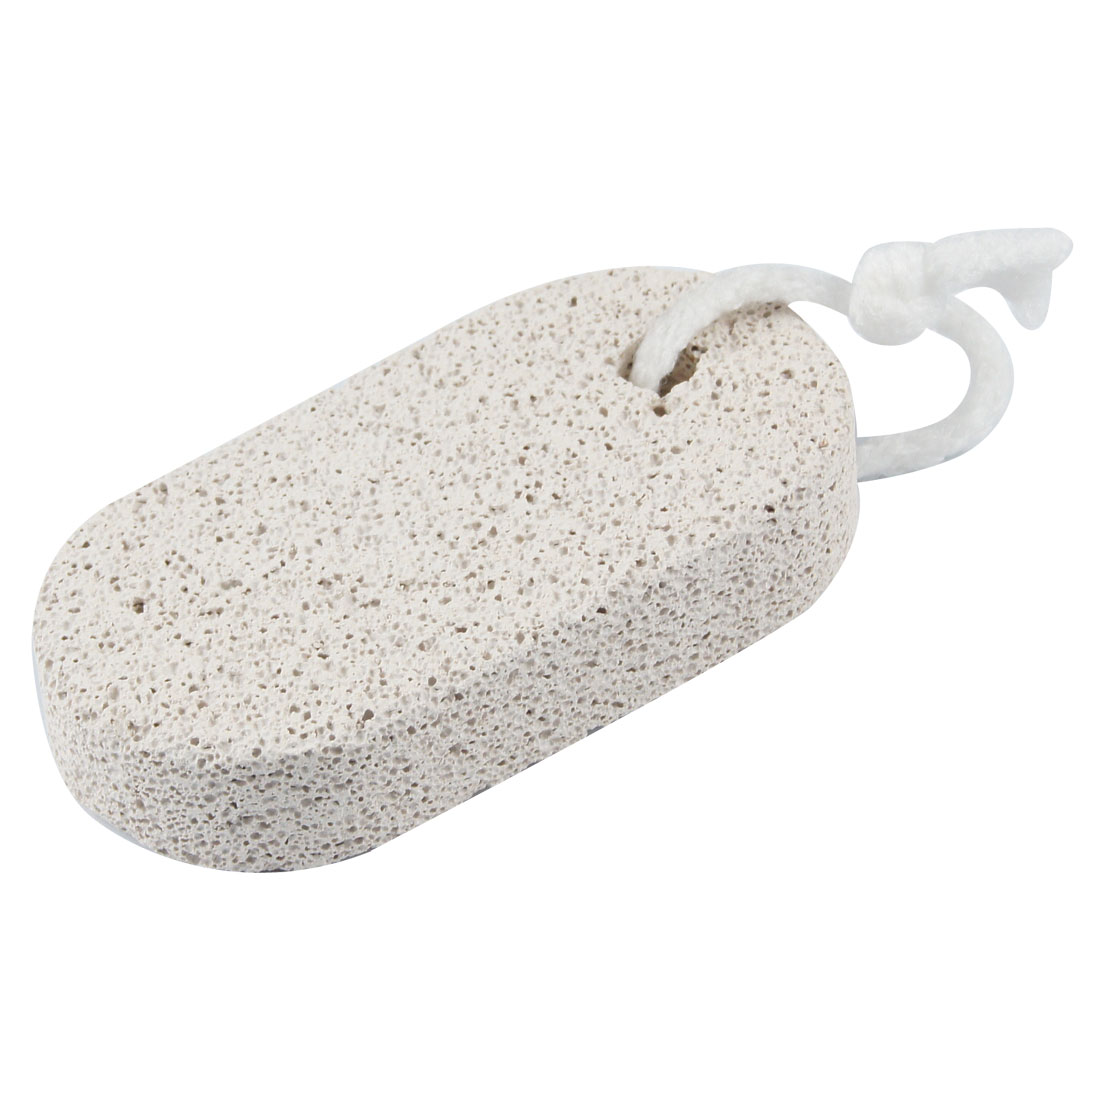 Oval Shape Pumice Stone Foot Pedicure Tool Dead Skin Remover Sanding File